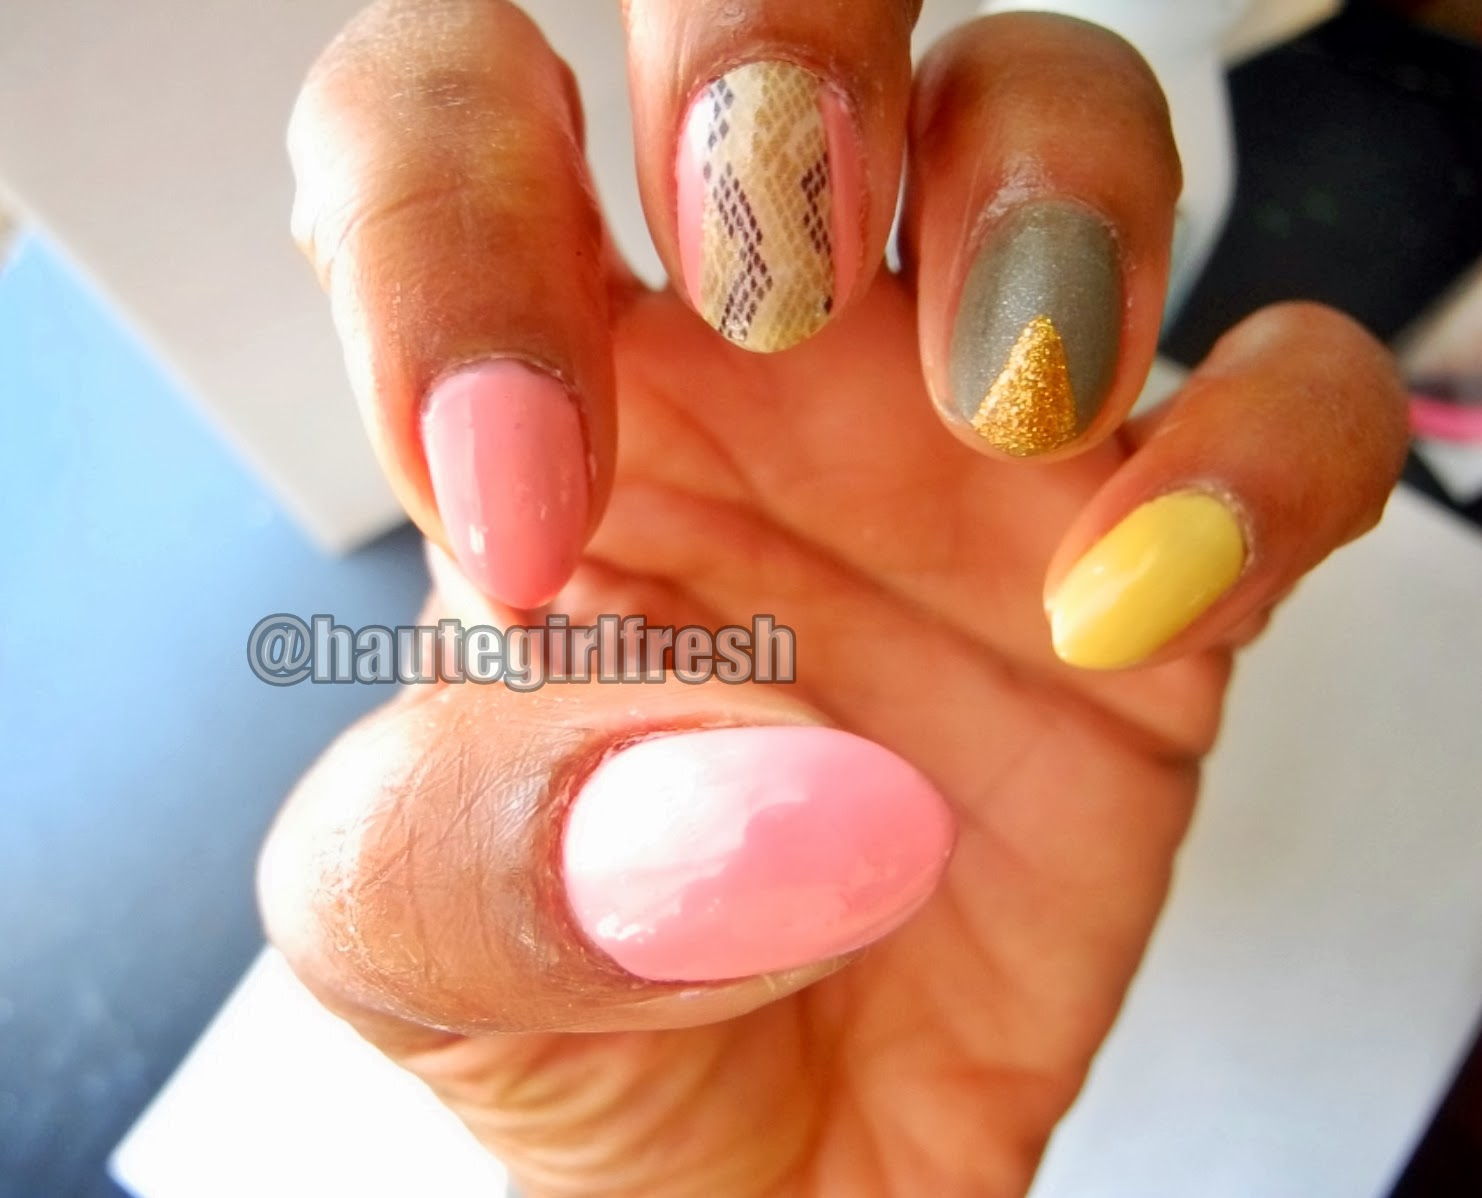 typeAjawn | MANIc Monday - Nails Inspired by Nicki Minaj\'s "|1482|1198|?|b0b933dfeb0d16abe19f804289c0978e|True|False|UNLIKELY|0.31333044171333313